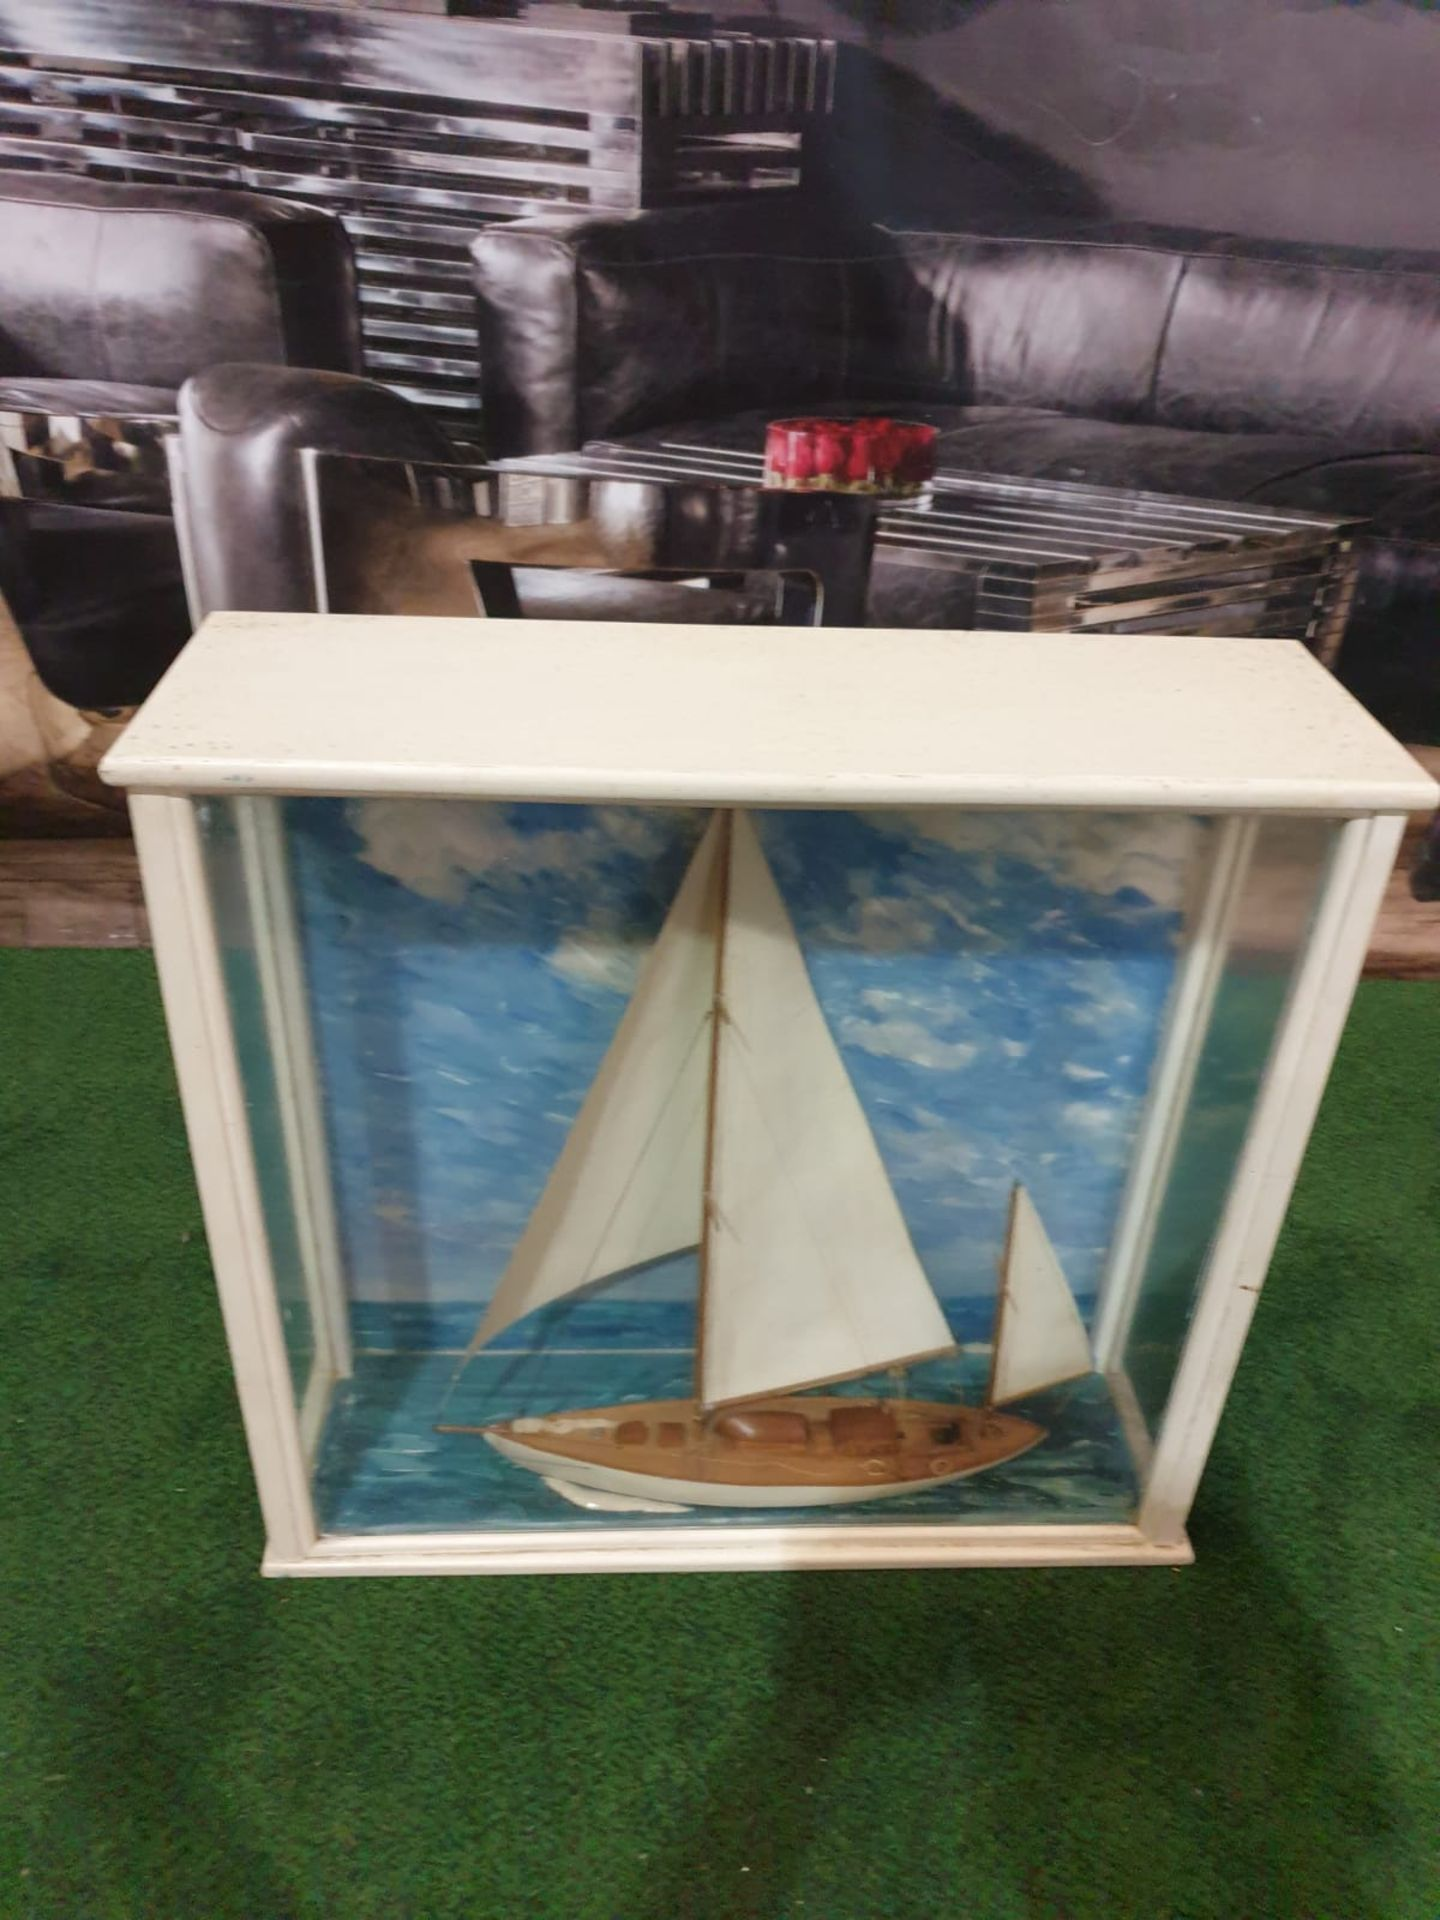 A scratch built model of a sailing yacht in a glass and painted wooden case. A scratch built model - Image 2 of 3